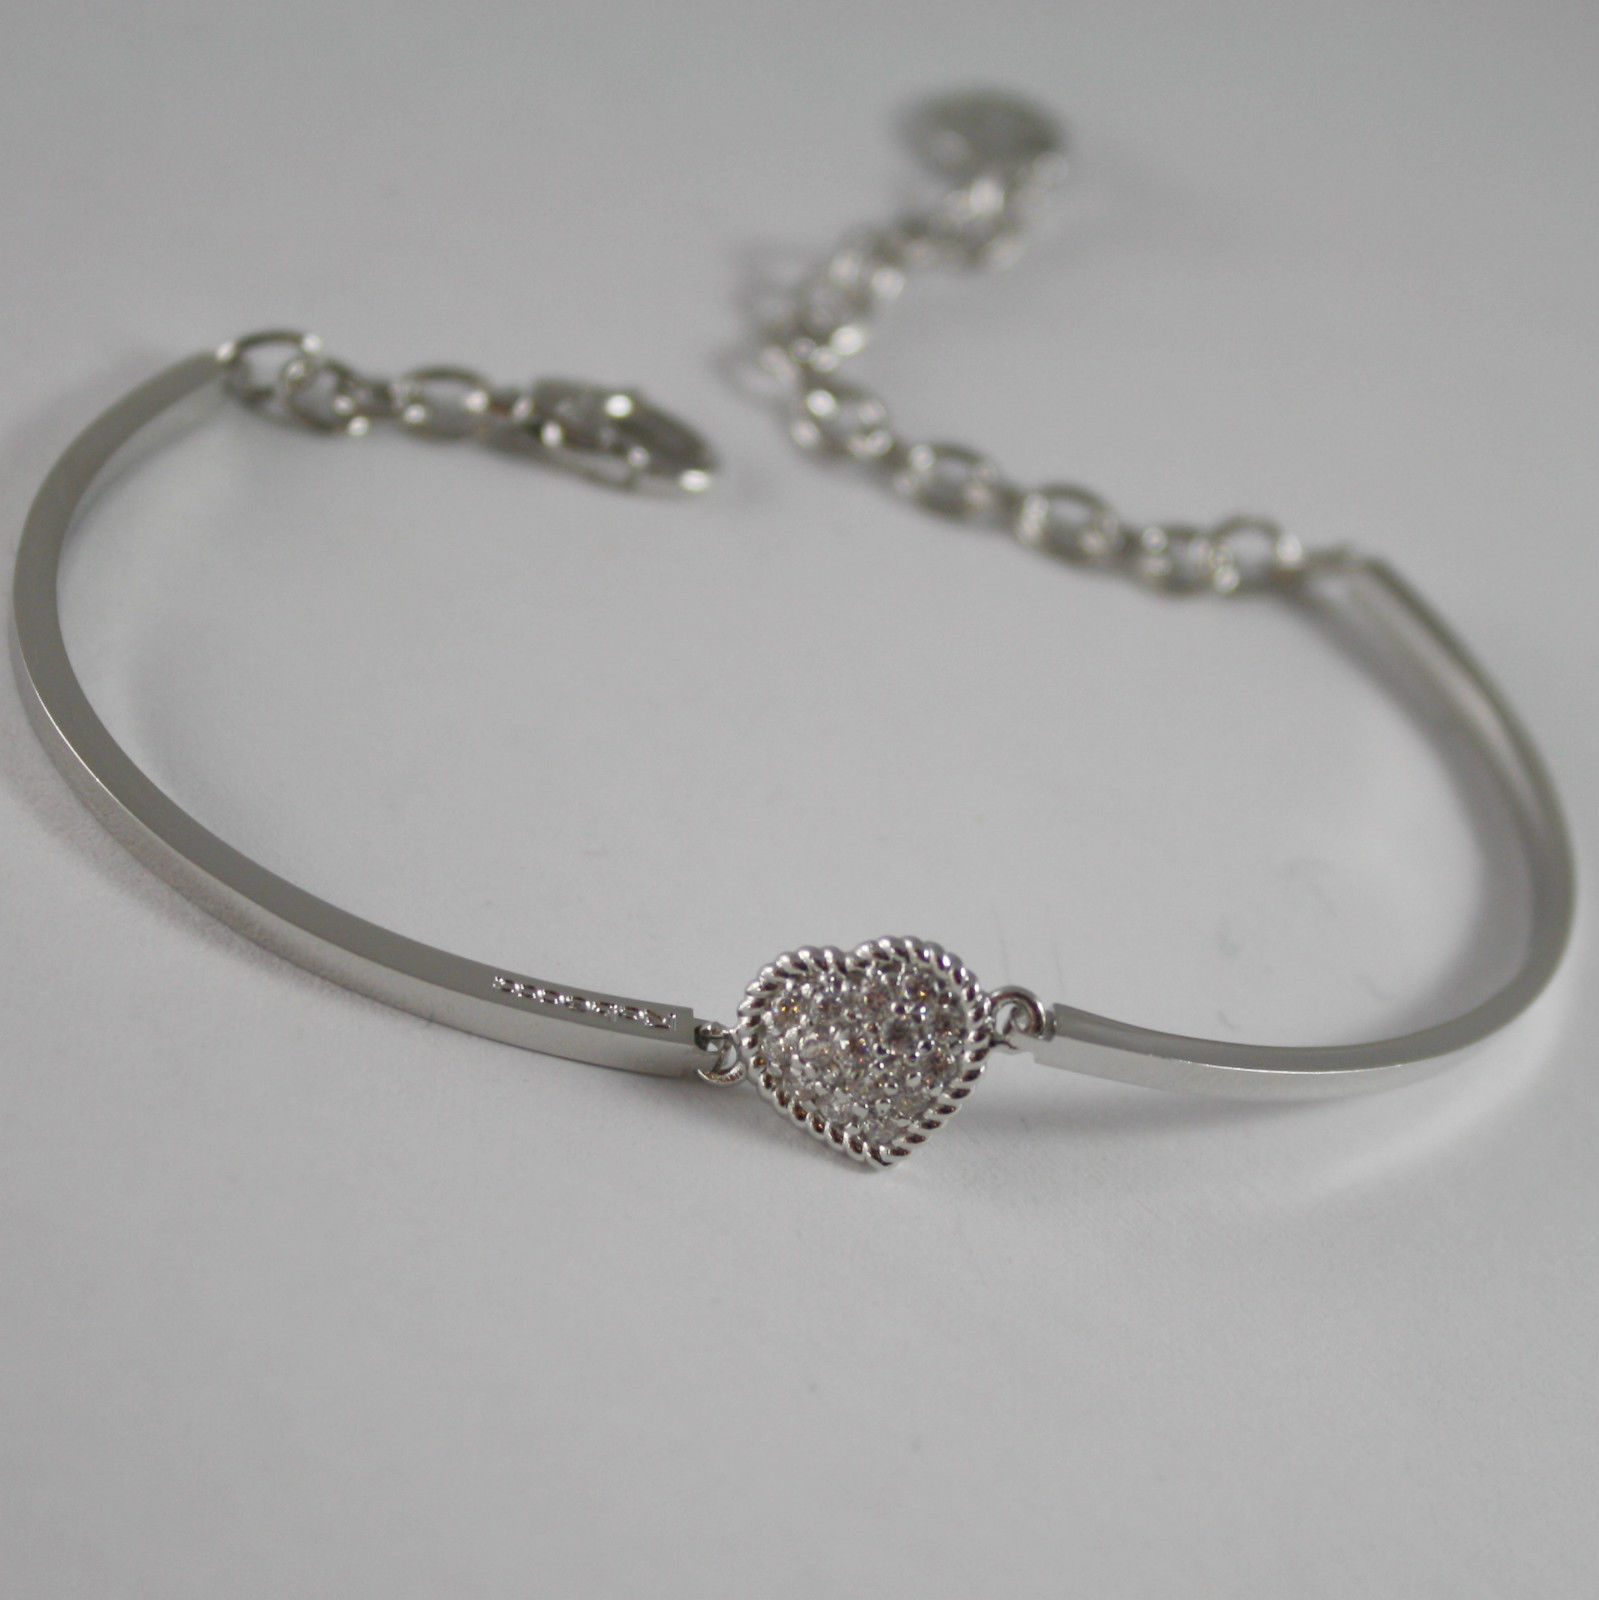 RHODIUM BRONZE BRACELET SEMI RIGID TENNIS HEART B14BBB04 REBECCA, MADE IN ITALY.